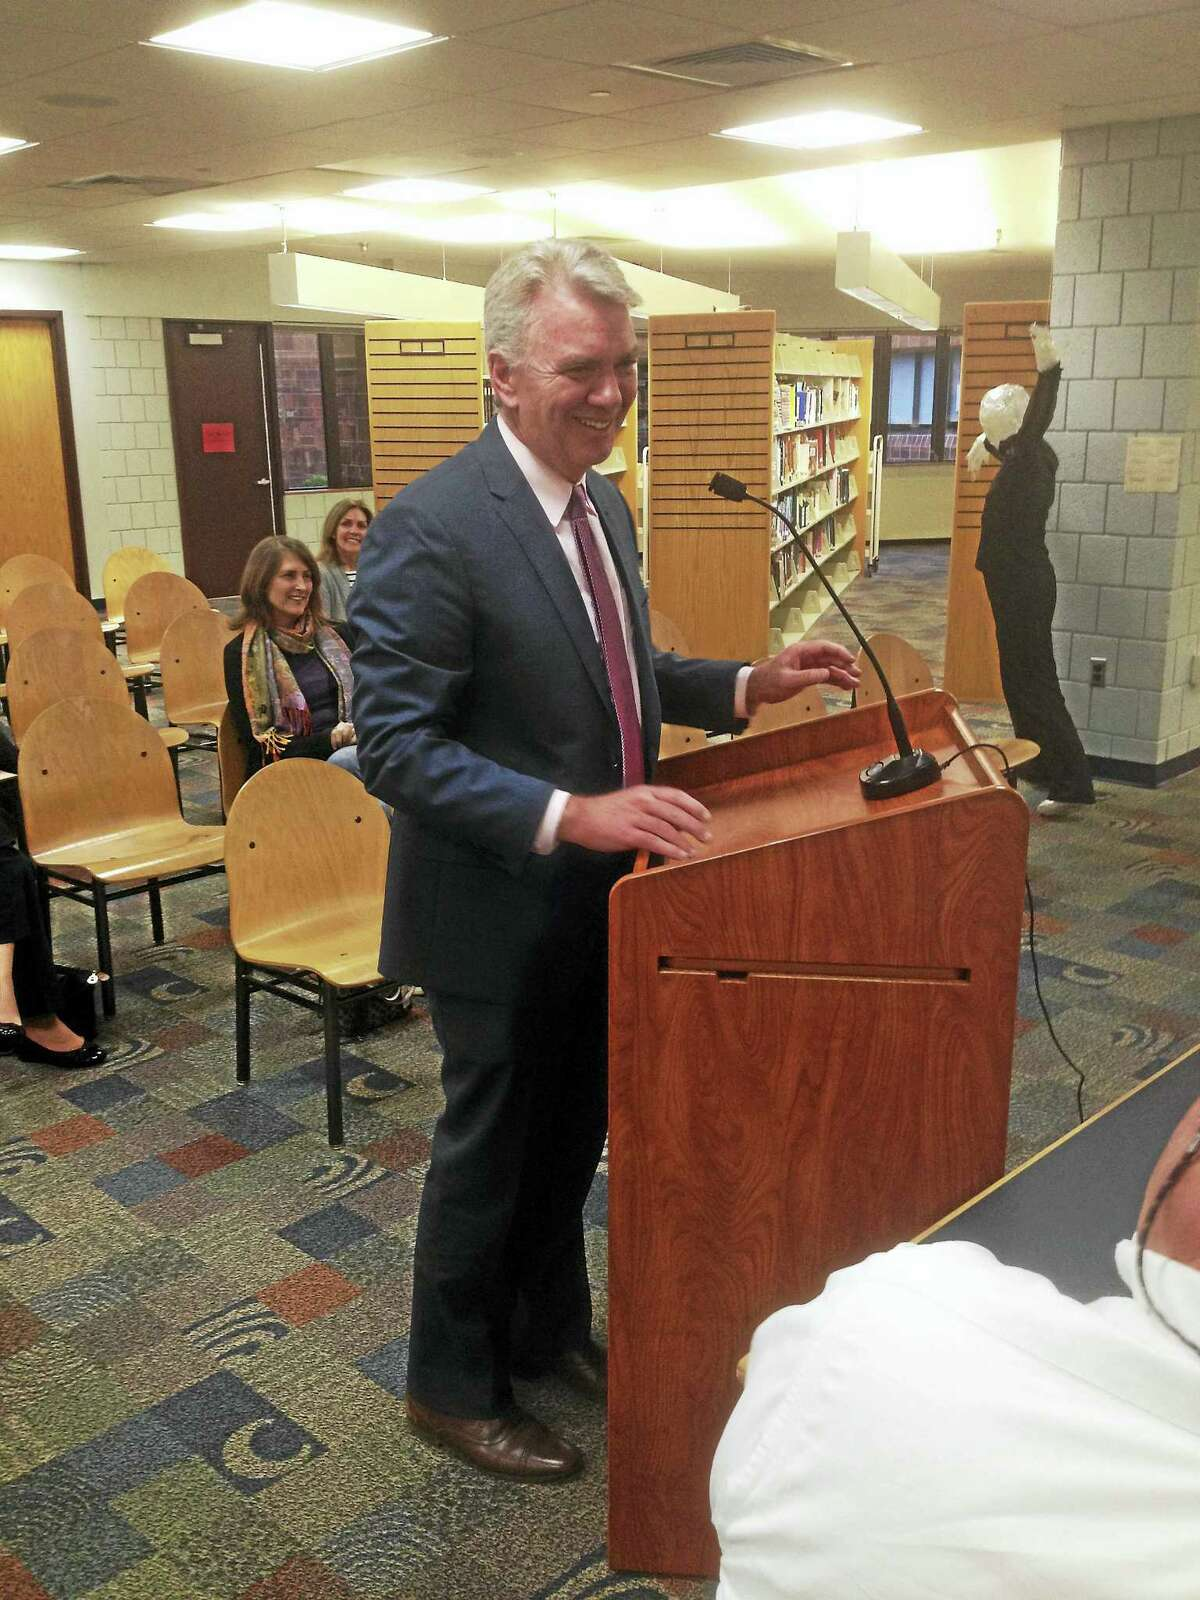 John Maloney was selected to be Cromwell's Superintendent of Schools this week.